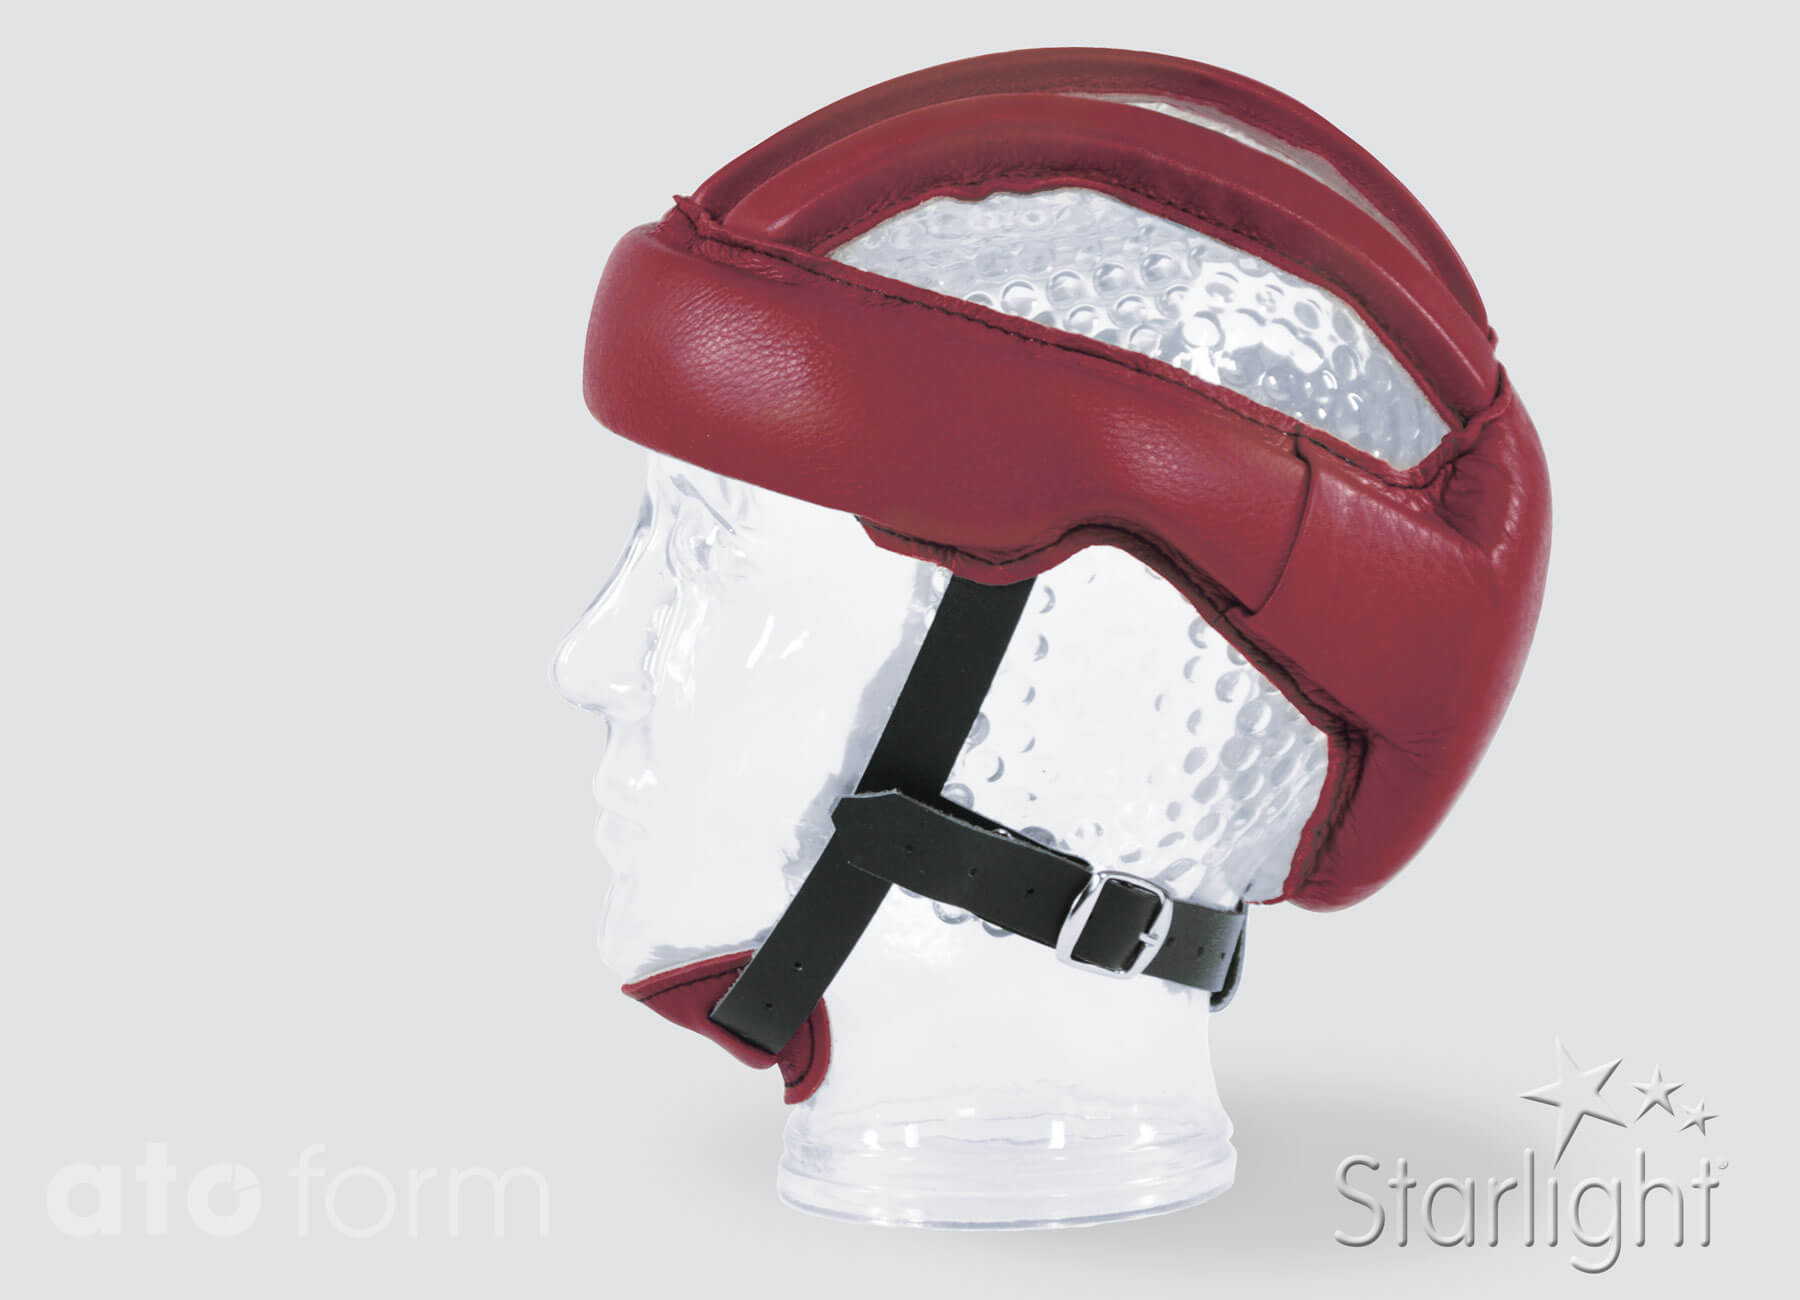 Head protection Starlight Protect, basic model